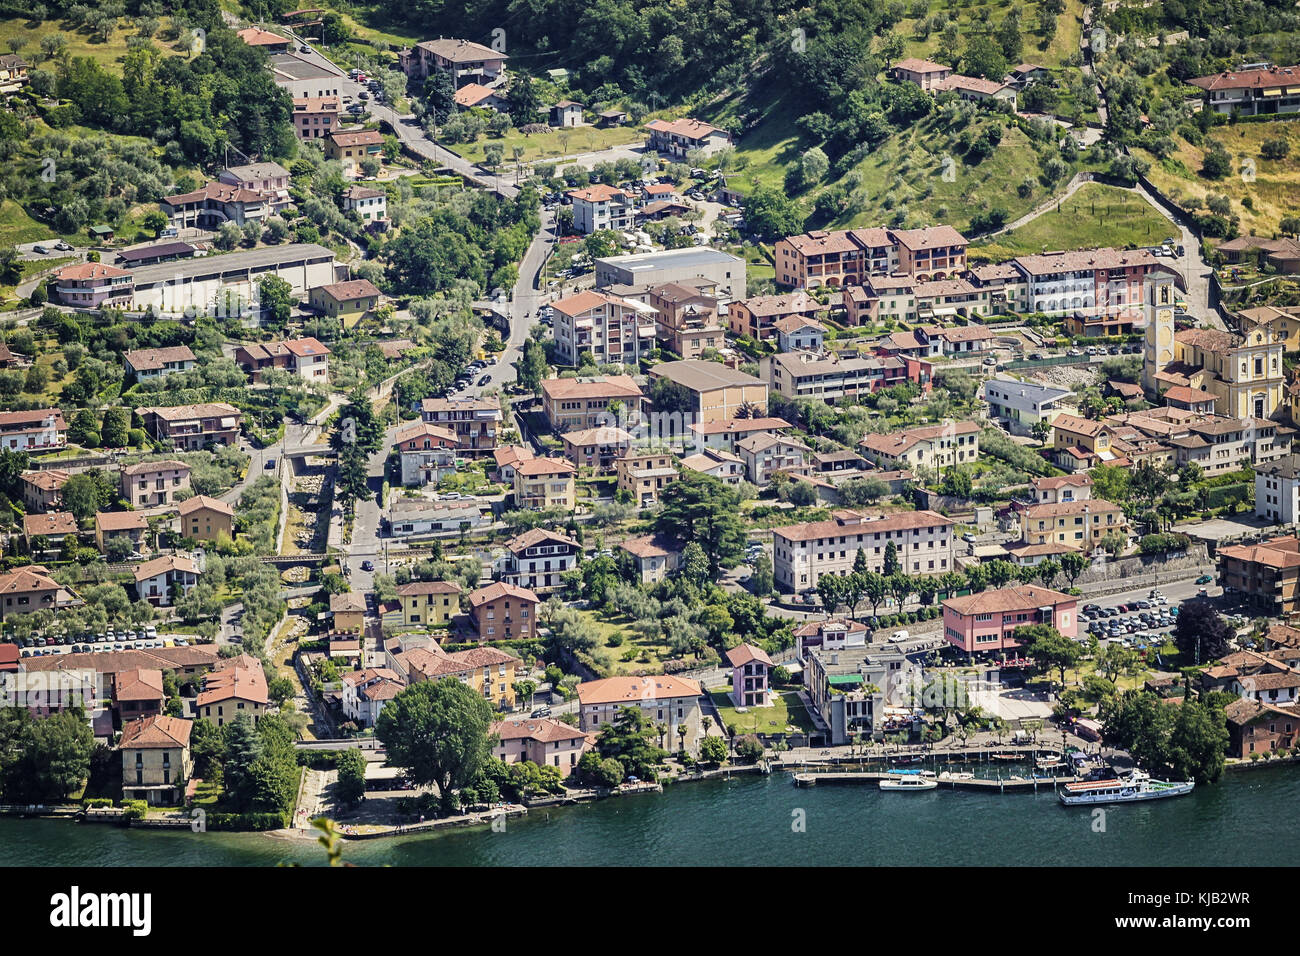 The Iseo lake in Italy Stock Photo